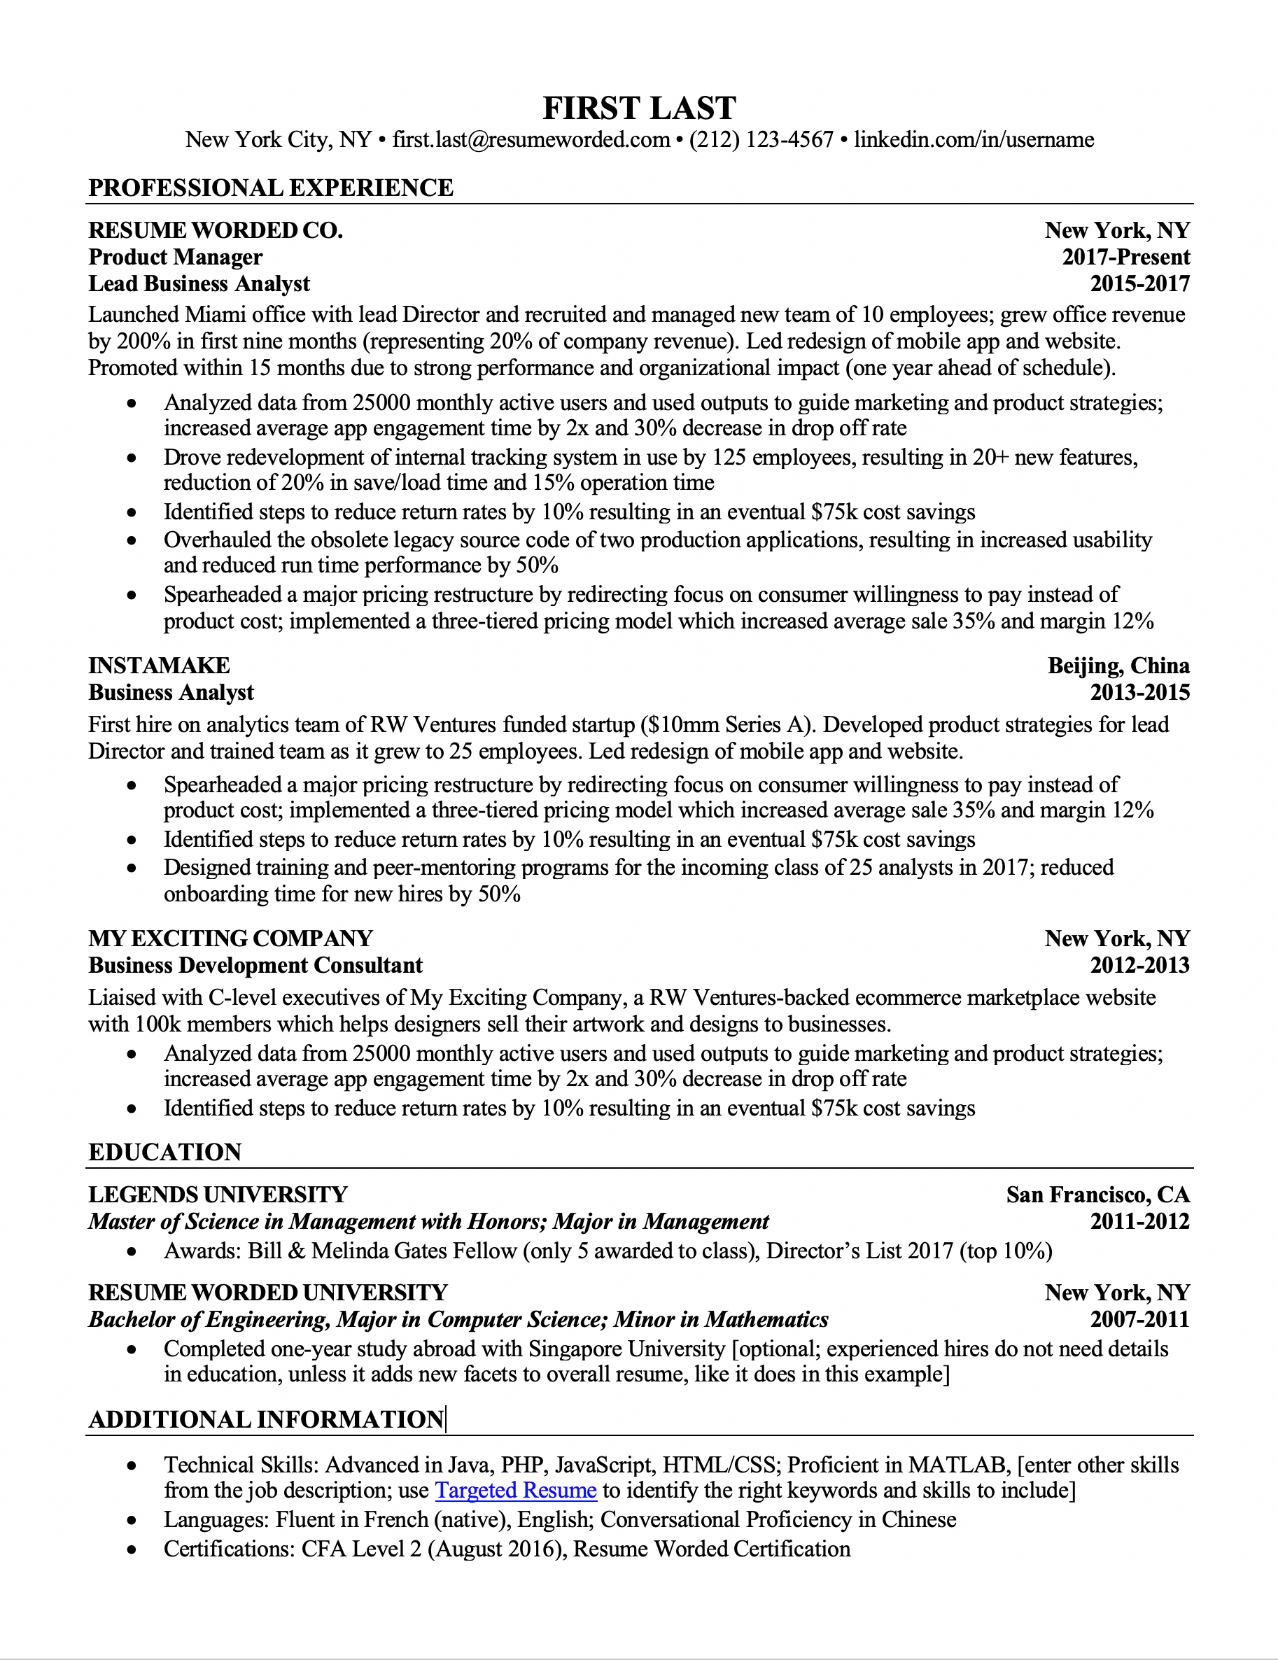 Work Experience Resume Format For Experienced The 2